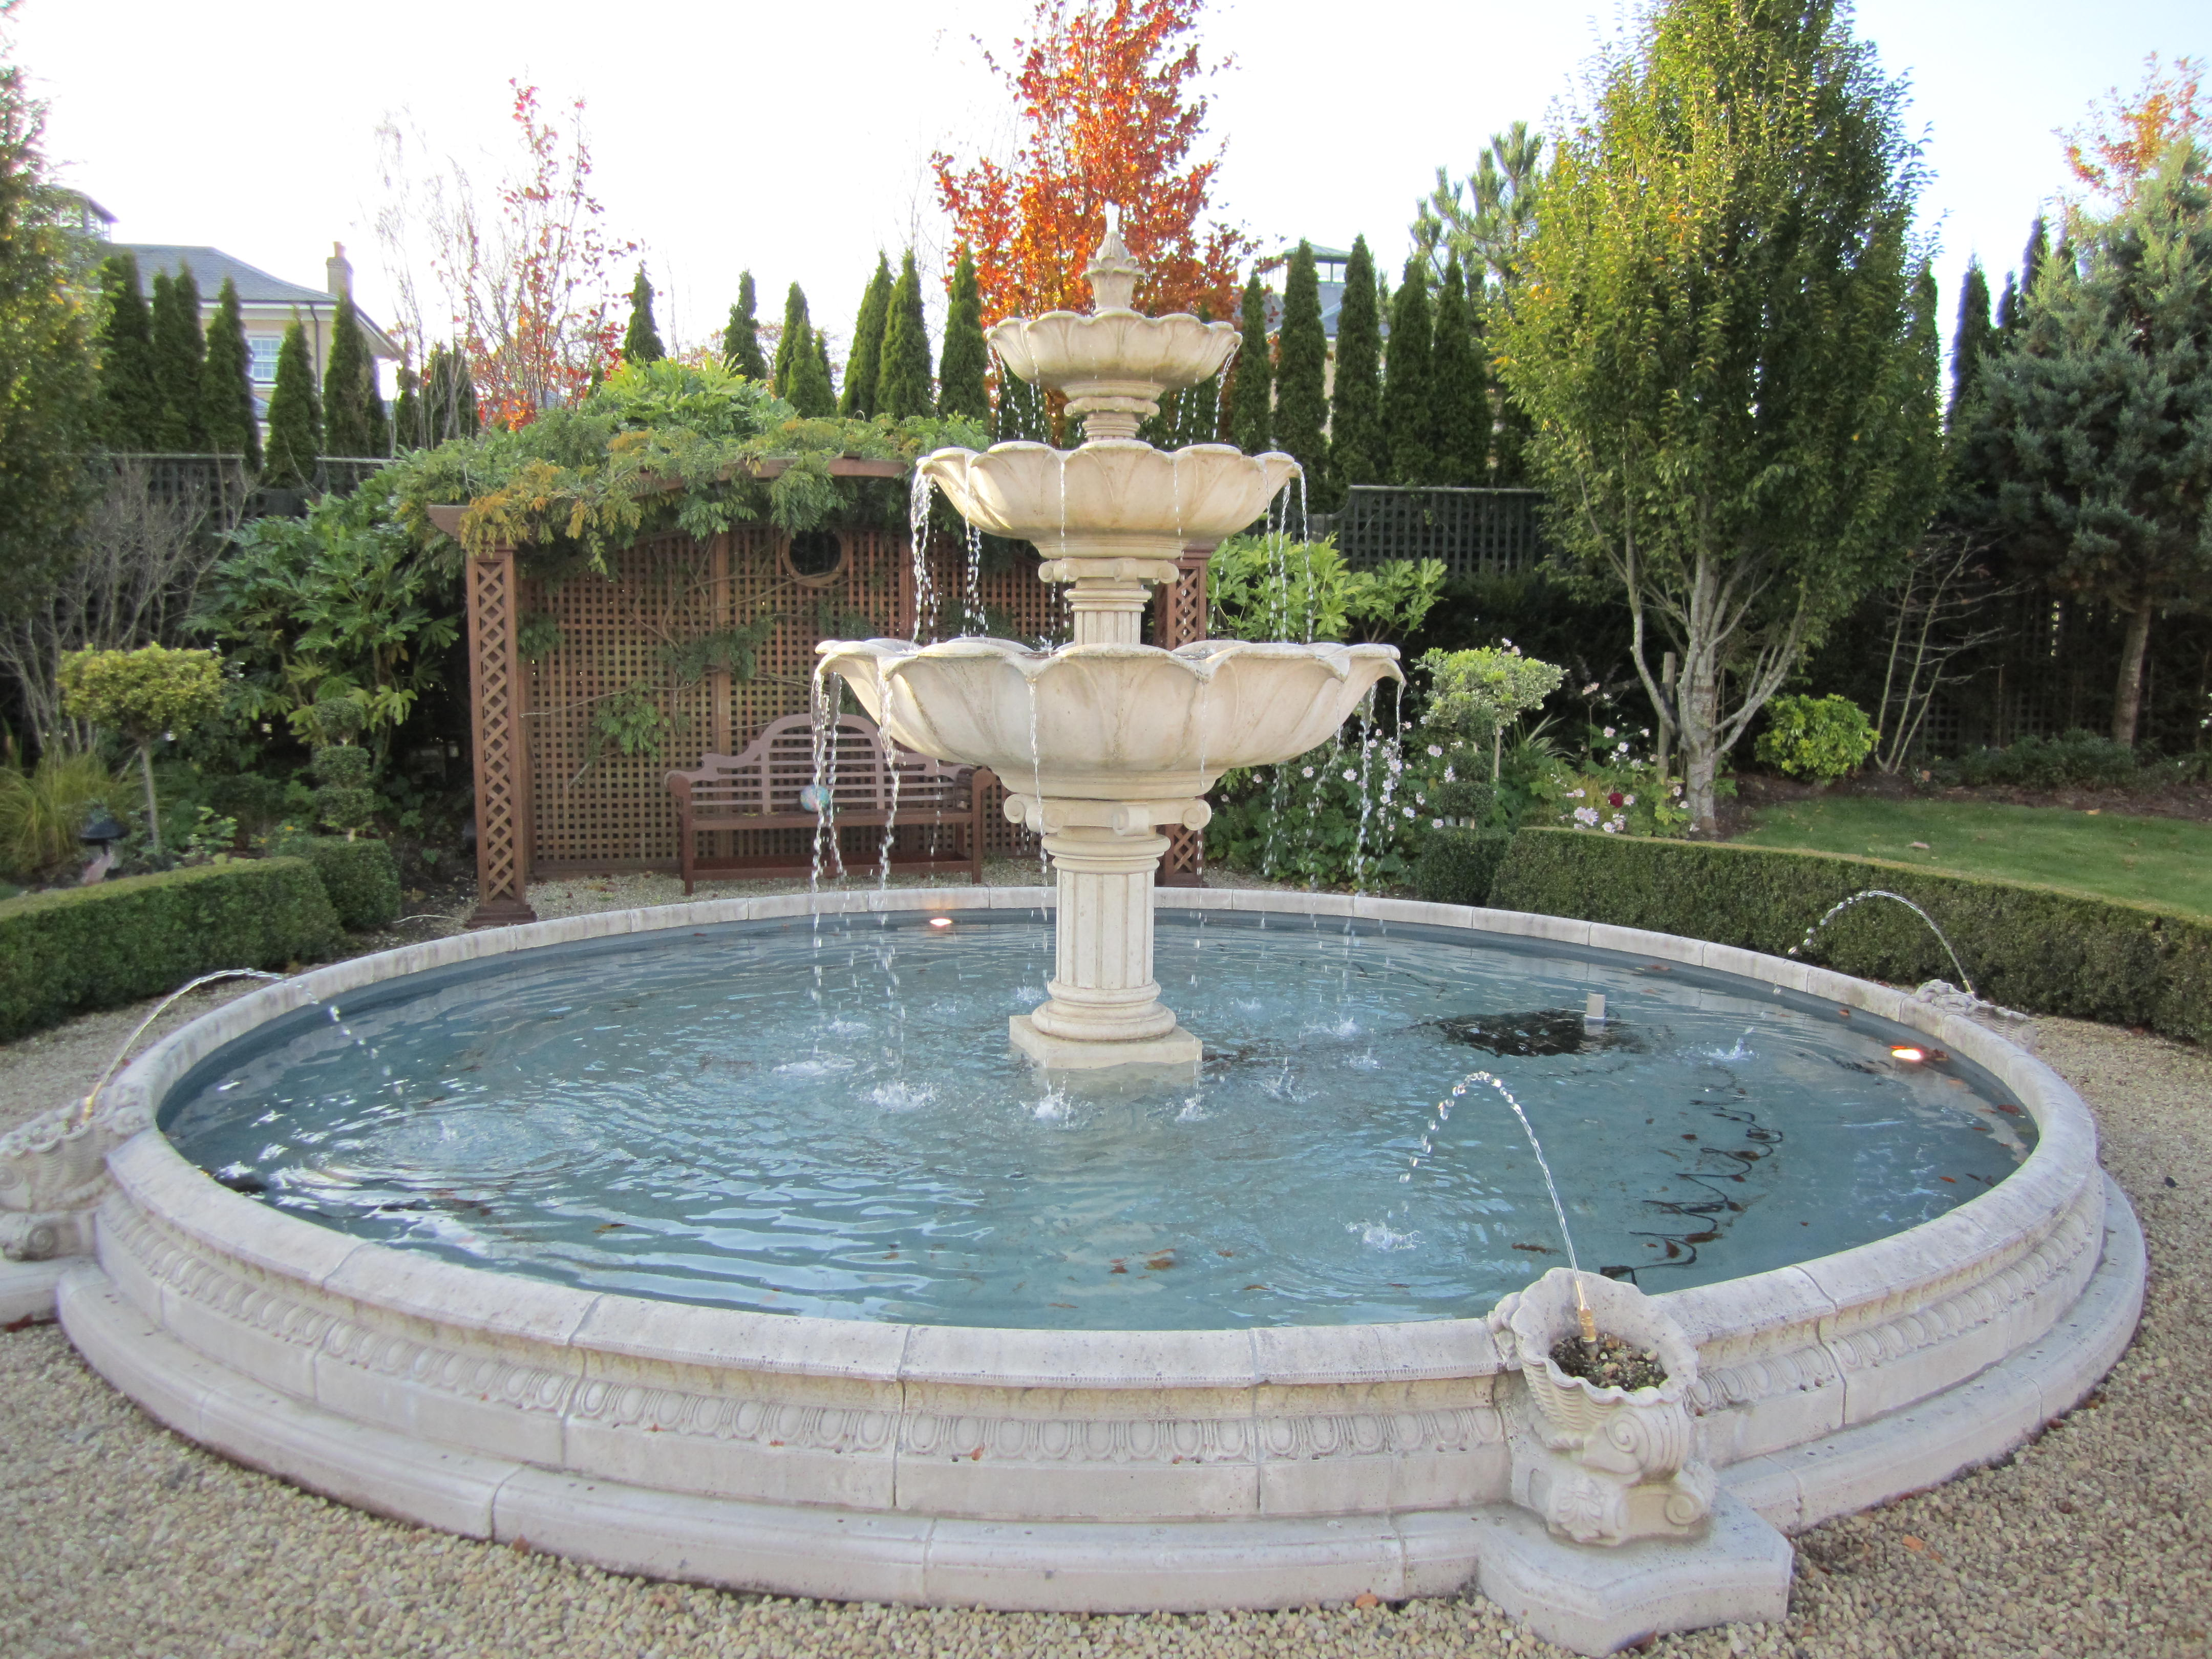 Waterfeatures by Kevin Baumann of Landscaping.ie